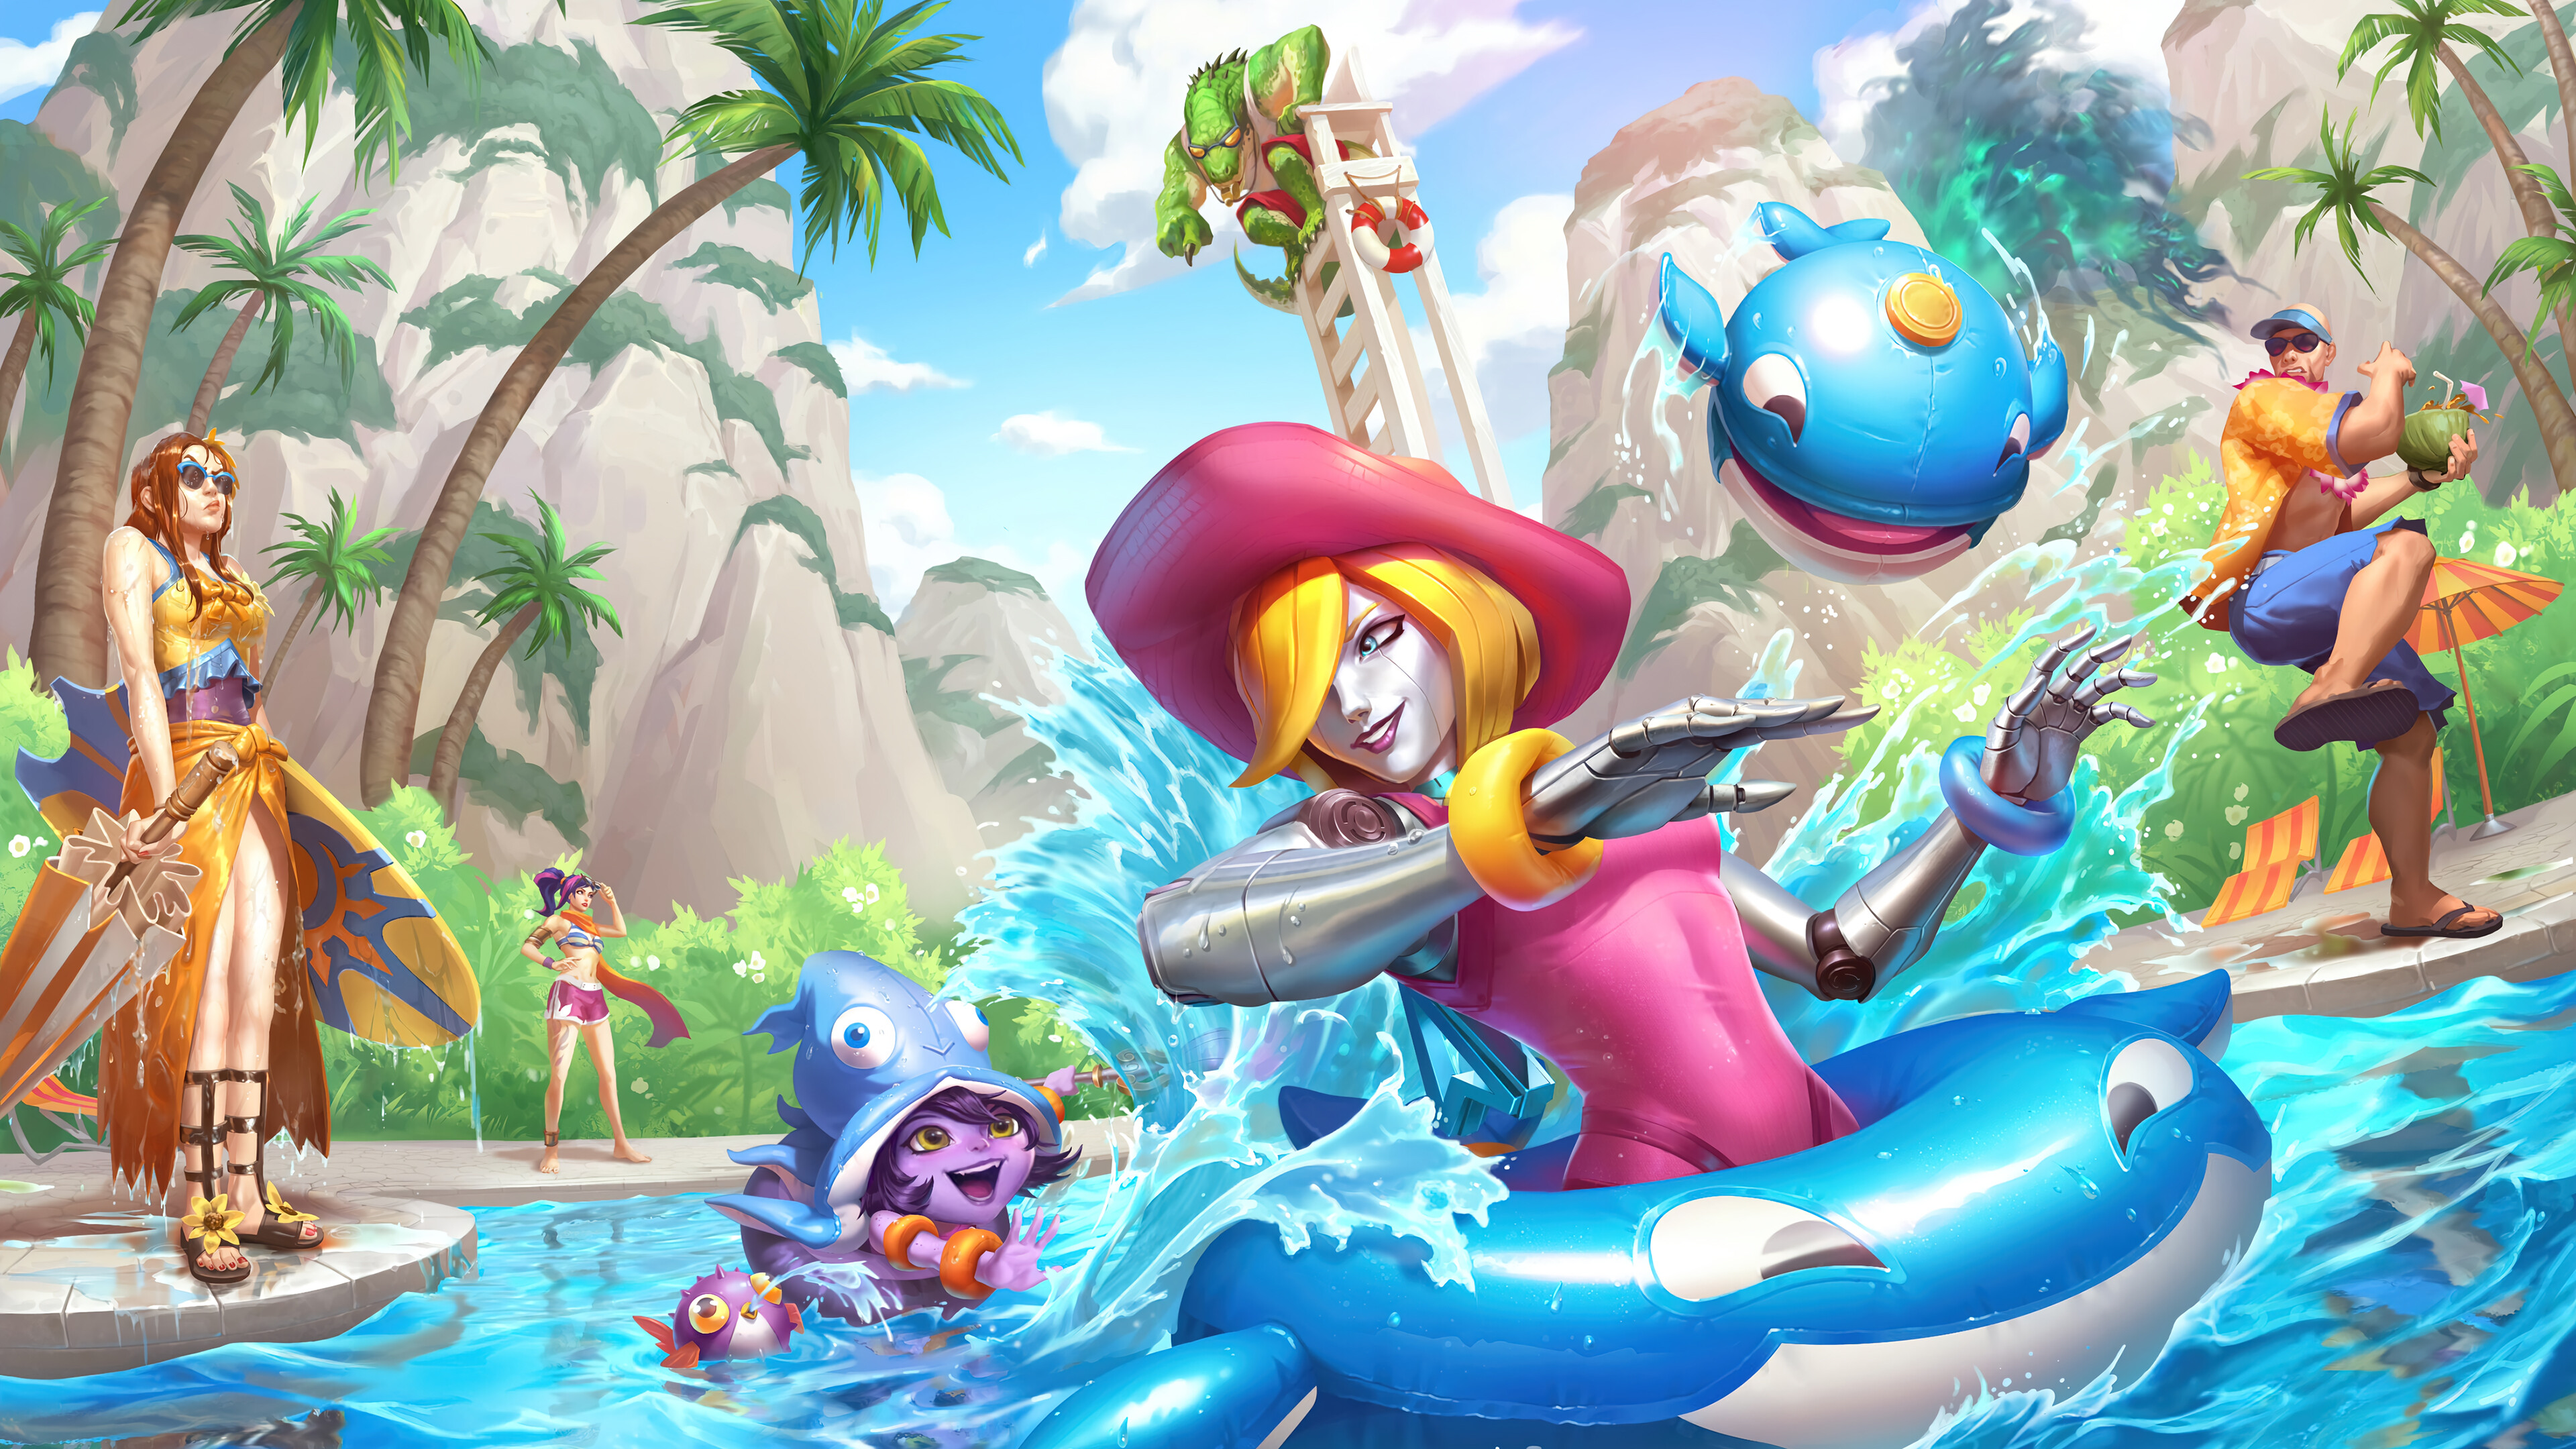 Wallpaper Oriana and Lulu League of Legends Rift Pool Party